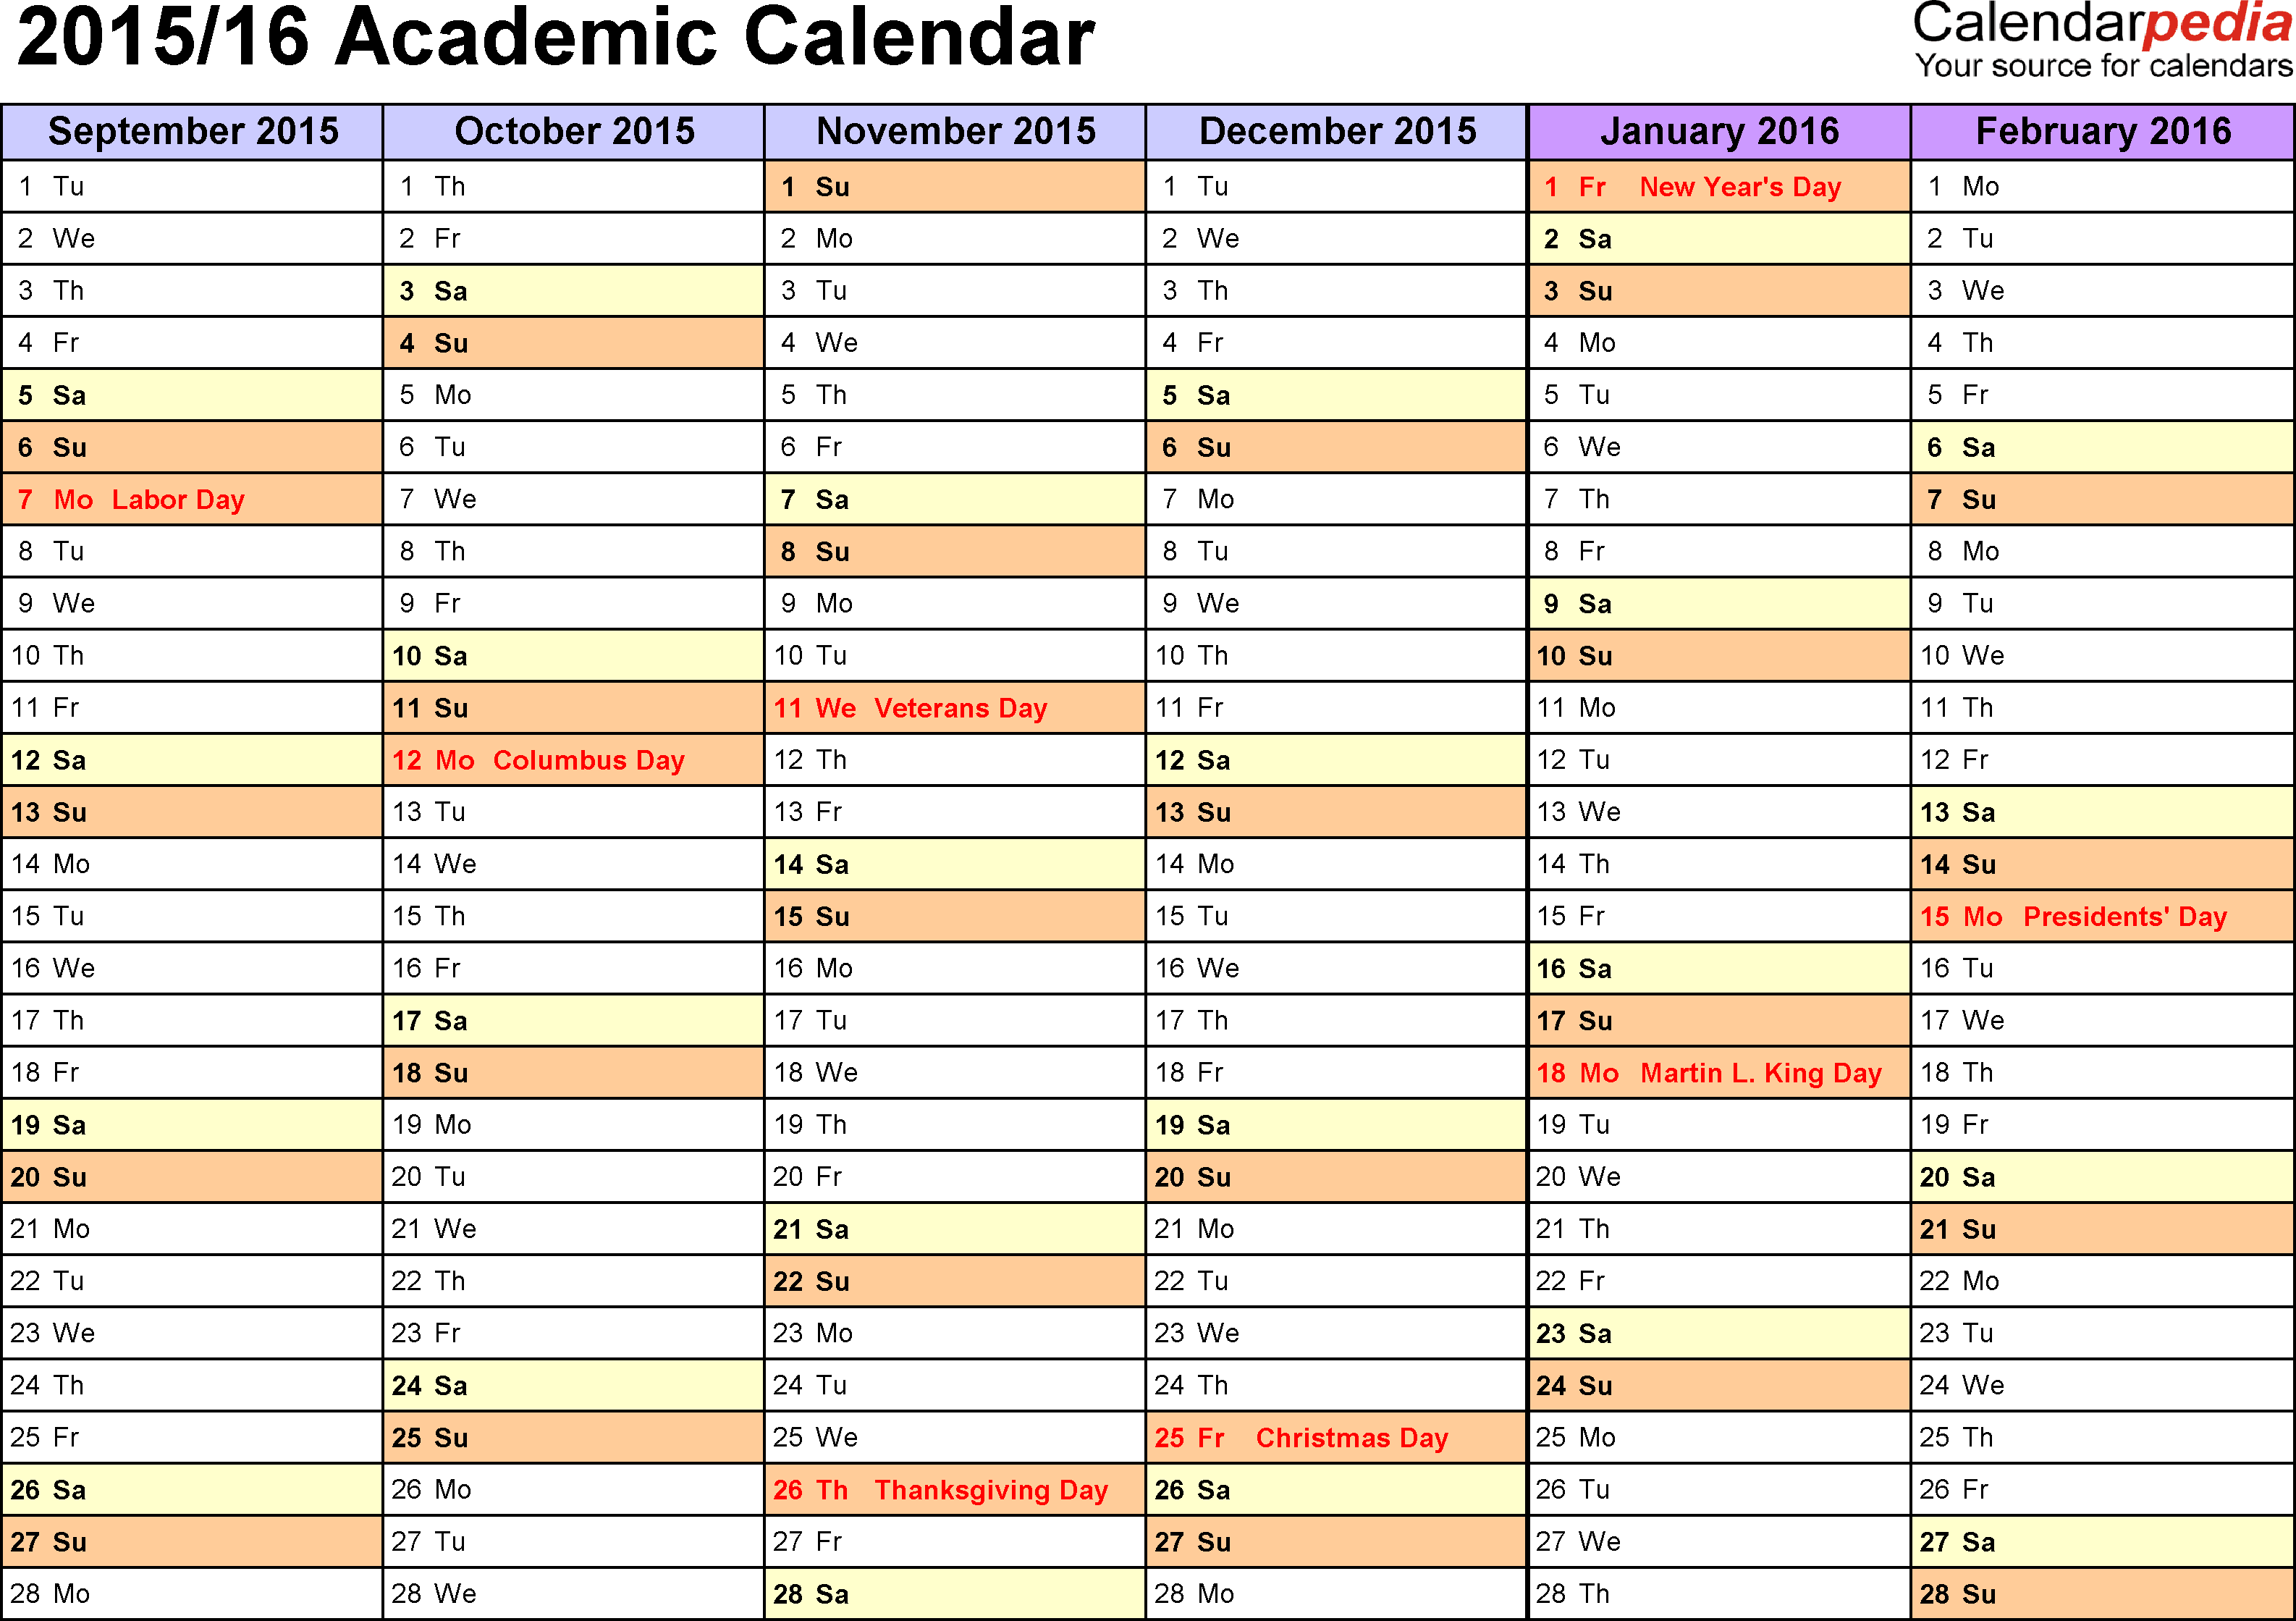 Box Template Printable Academic Calendar 2015 2016 - Pin Calendario ...